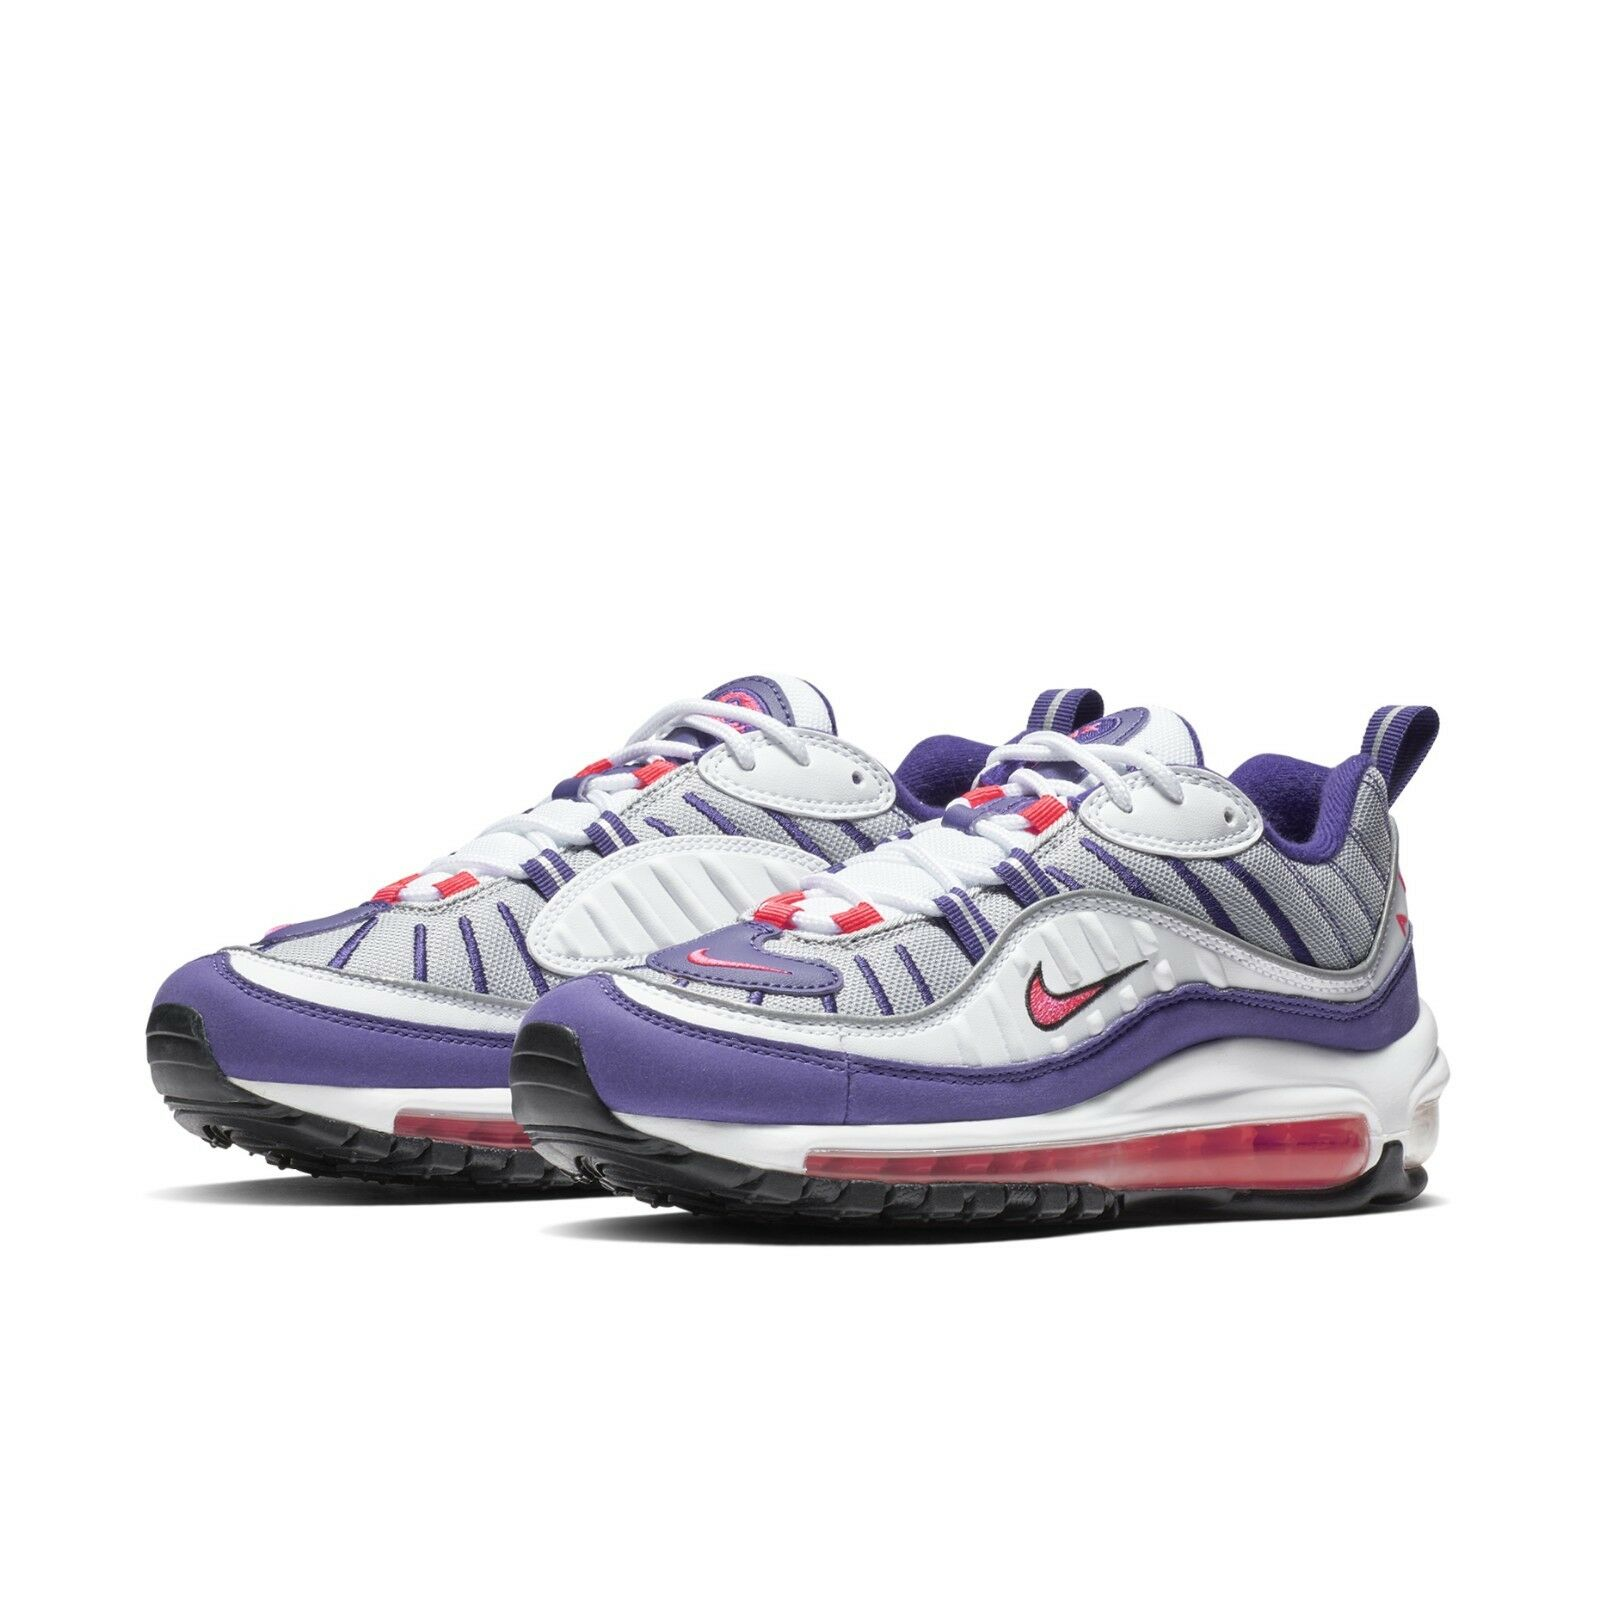 Nike Womens Wmns Air Max 98 Raptors White Racer Racer Racer Pink Purple Sneakers AH6799-110 6e02e5